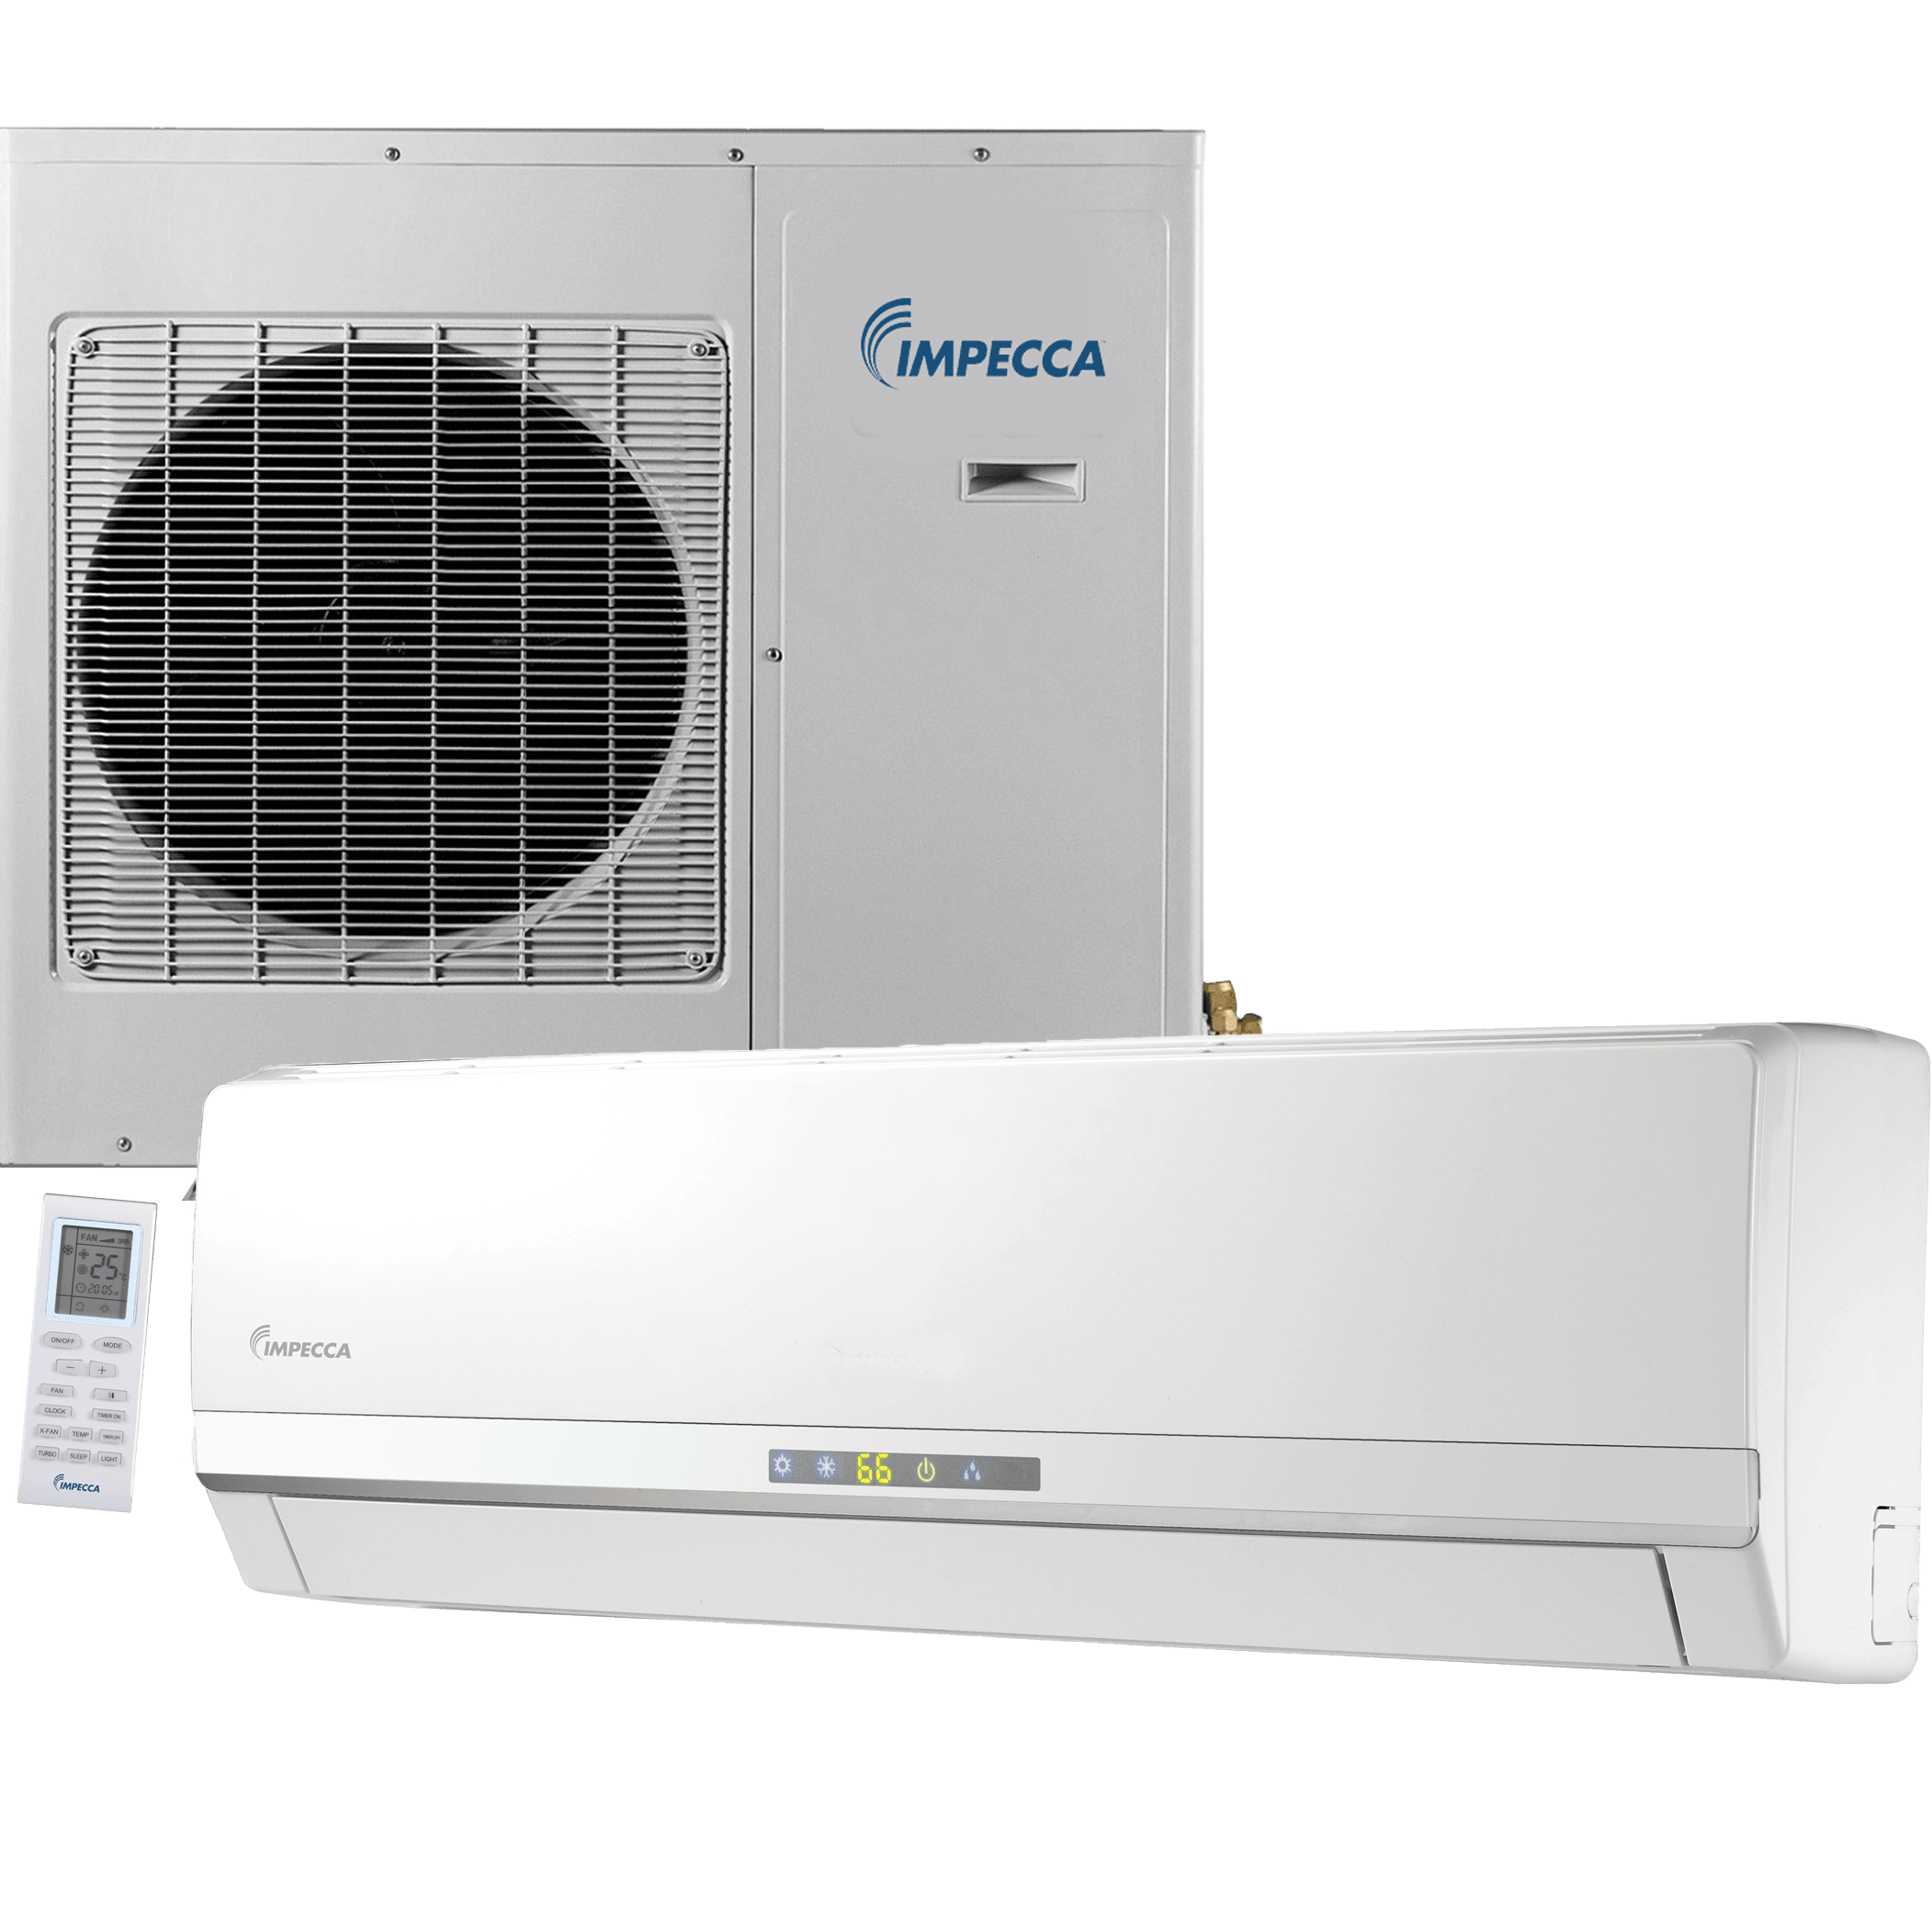 Png image purepng free. Cool clipart air conditioner